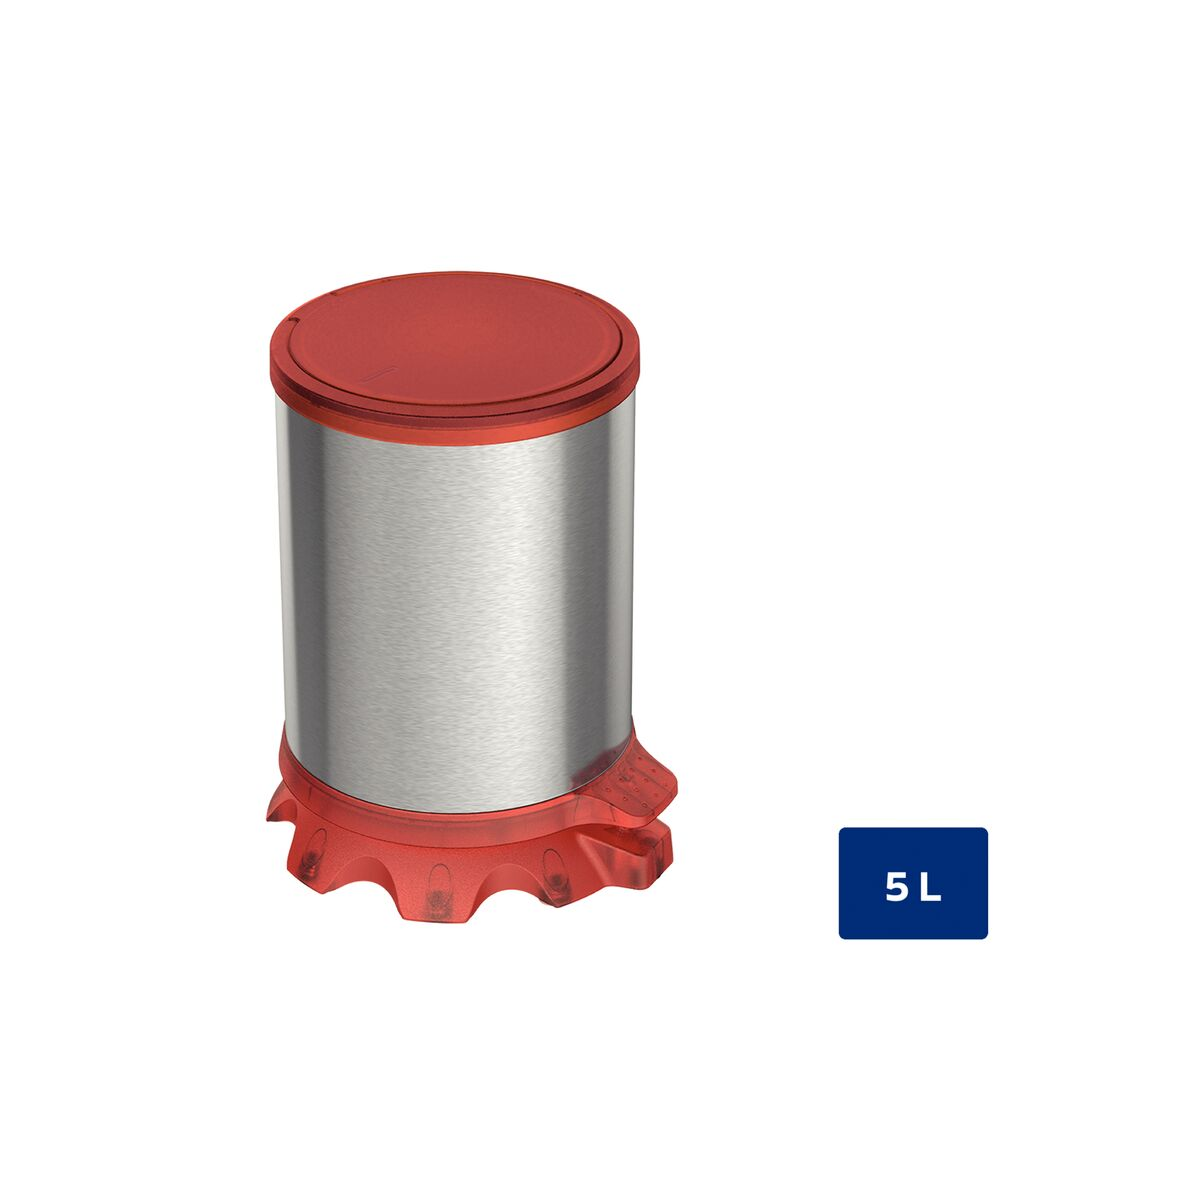 Tramontina Sofie stainless steel pedal trash can with Scotch Brite finish and transparent Red plastic detailing, 5 L